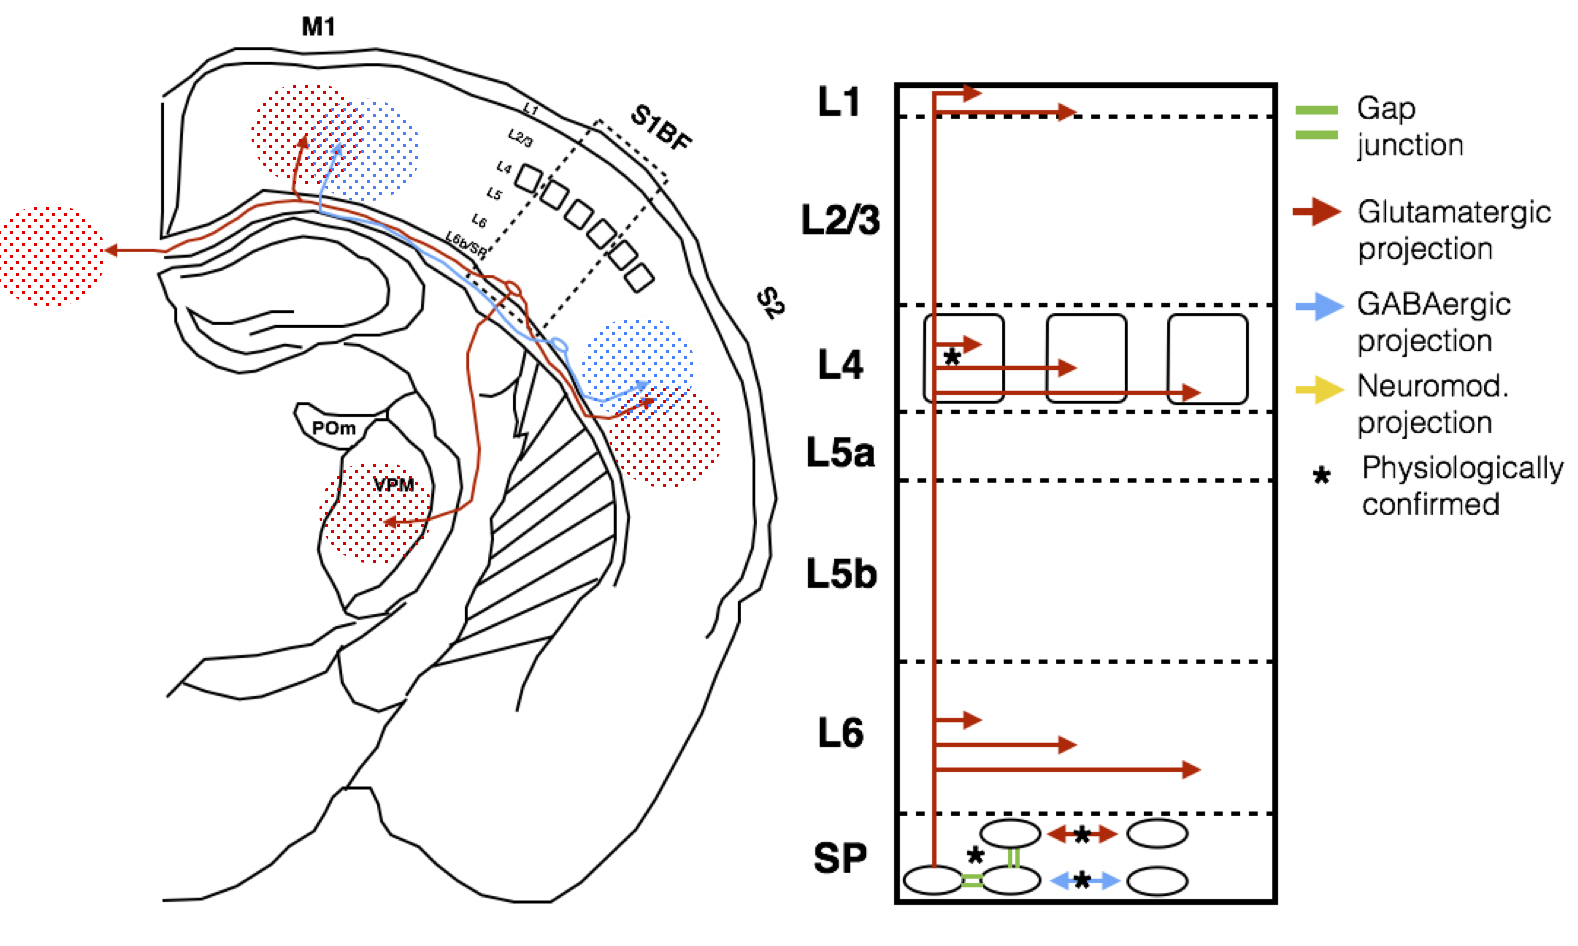 I realize now there is an arrow missing there. Subplate (or at least mature L6b) neurons also project to higher-order thalamic nuclei, of which the POm is an example.